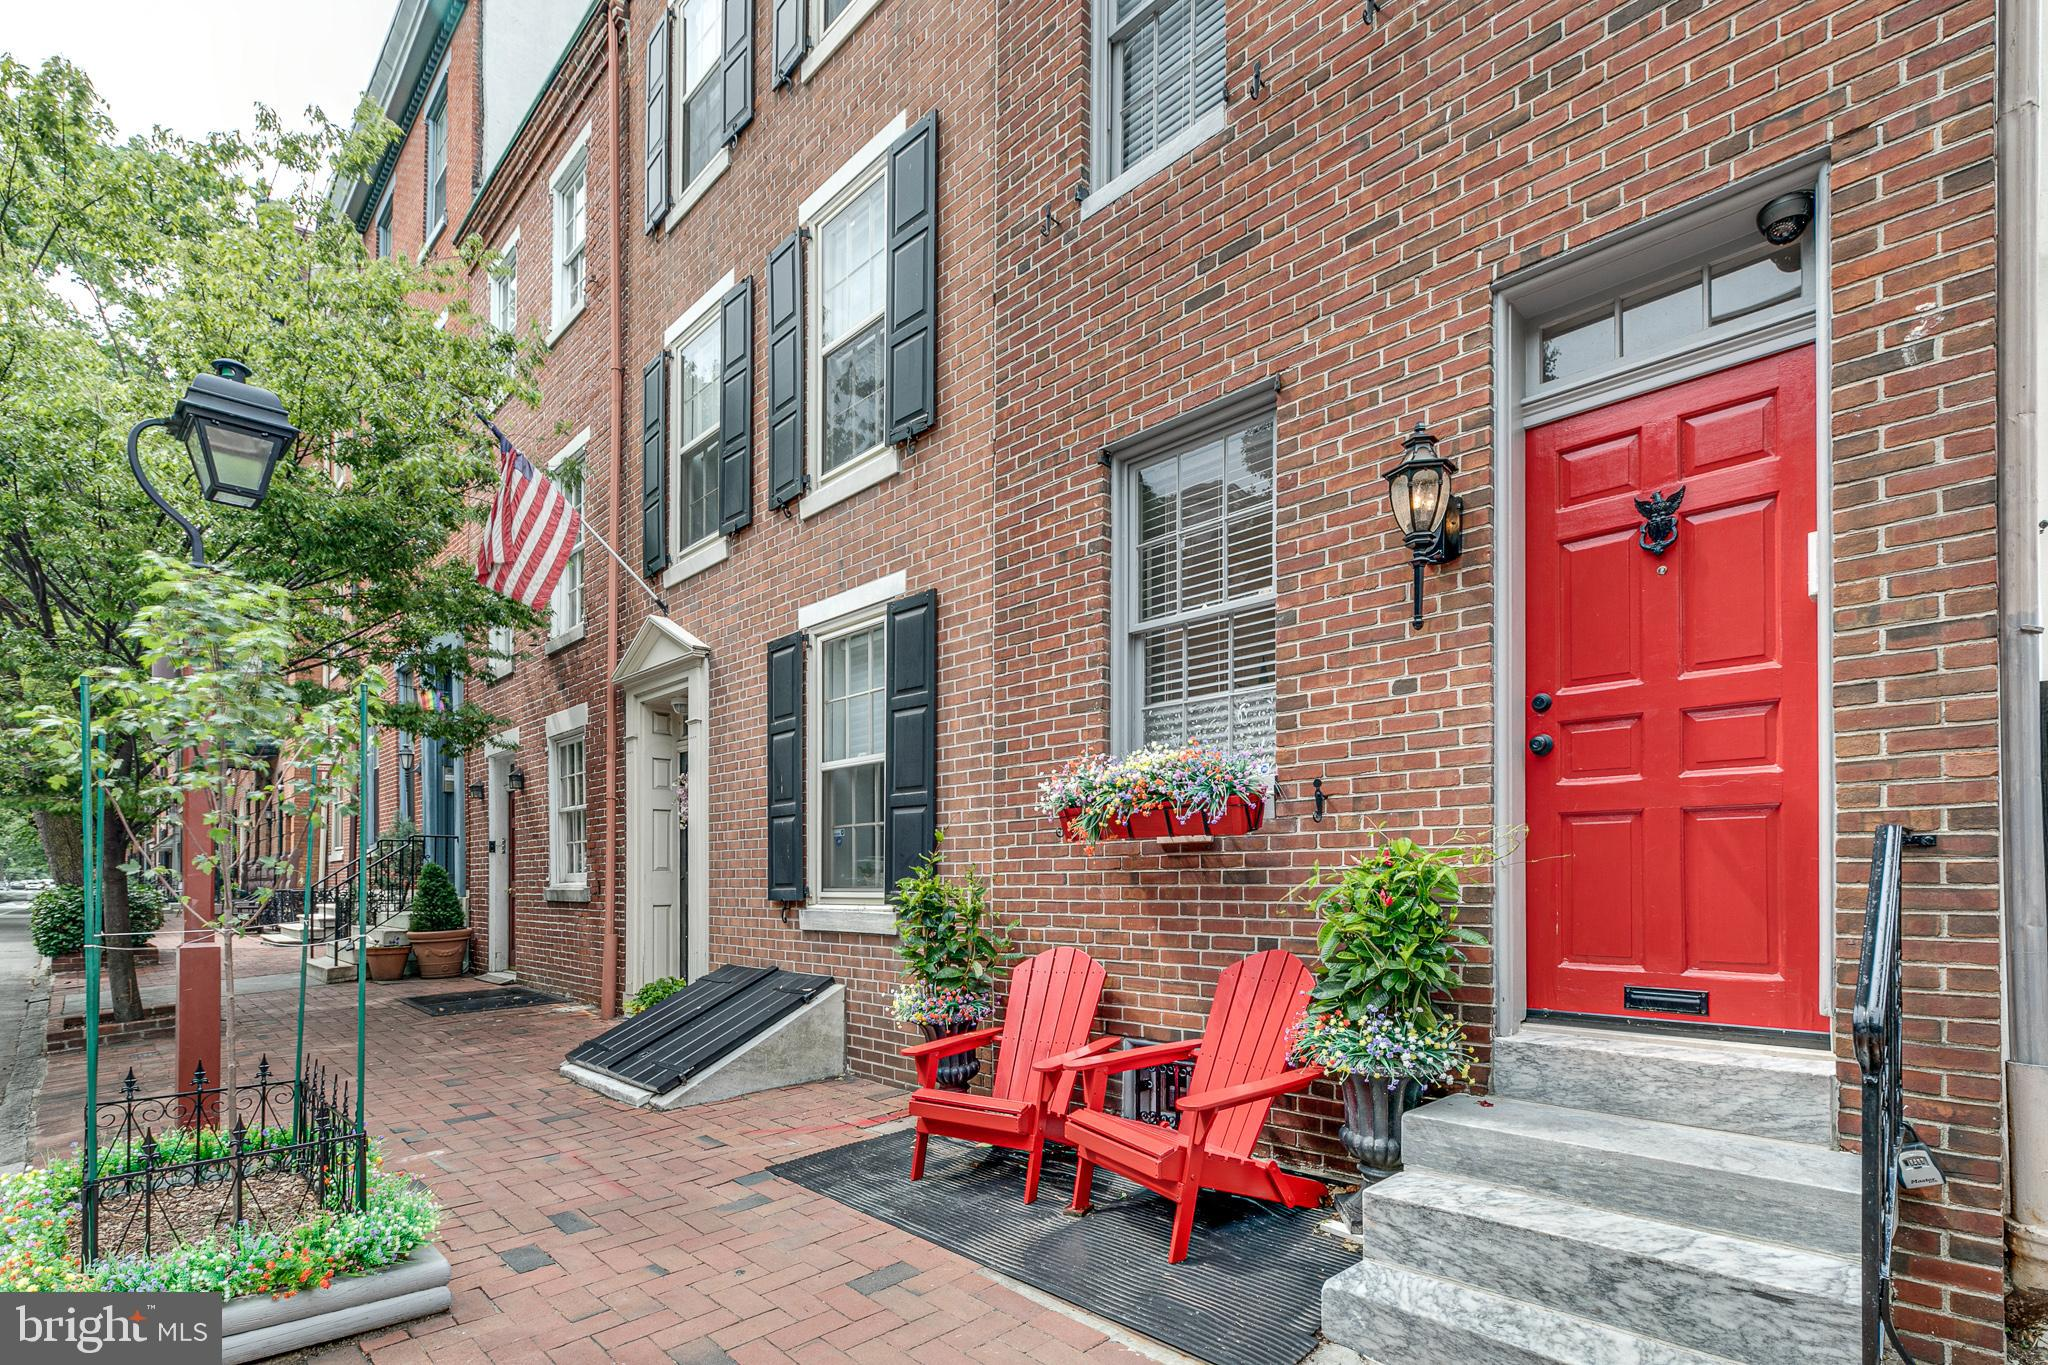 """Welcome to 221 Pine Street!   A unique one-of-a-kind """"Suburb-City Lifestyle"""", historic home that is unmatched in Society Hill. There is not a better location in Center City Philadelphia to own and enjoy a 5 Bedroom - 5 Bathroom Luxury Townhome.  221 Pine has privacy that is a rare find at any prime location in the city today. The home boasts multiple decks & outdoor spaces, a spacious yard with a vegetable garden & patio to barbeque, separate guest quarters and kitchen, luxury finishes throughout, and so much more! This property is located directly adjacent to Head House Square so it's directly next to great restaurants and amenities plus the neighborhood perks include everything from easy access to beautiful park spaces and even easier parking with a garage just a block away. This luxury home is within walking distance to some of the city's best attractions including Old City, Penn's Landing, South Street, and more!   You just have to look over your right shoulder to see Head House Square as you enter into the home from Pine Street. The first floor is being affectionately called the """"guest quarters"""" you open the door on the left side of the hall and go in to view the living room to the left and a well-appointed kitchen with granite countertops to the right. Continue down the hall to the large marble bathroom and bedroom. The first floor boasts ample space to entertain friends both indoors or outside in your full-length yard and patio space. There is easy access from the side and rear of the home to the exterior amenities. You decide to step out back to view the private patio and then stroll through the yard noticing the beautiful trees, rose bushes, and vegetable garden. You enter back into the house up the side stairs and through the side door. Before leaving the """"guest quarters"""", we head down to the recently finished basement and 5th bedroom with its marble bathroom and separated maintenance room with all new services.  On the 2nd floor, visit the living room (Br"""